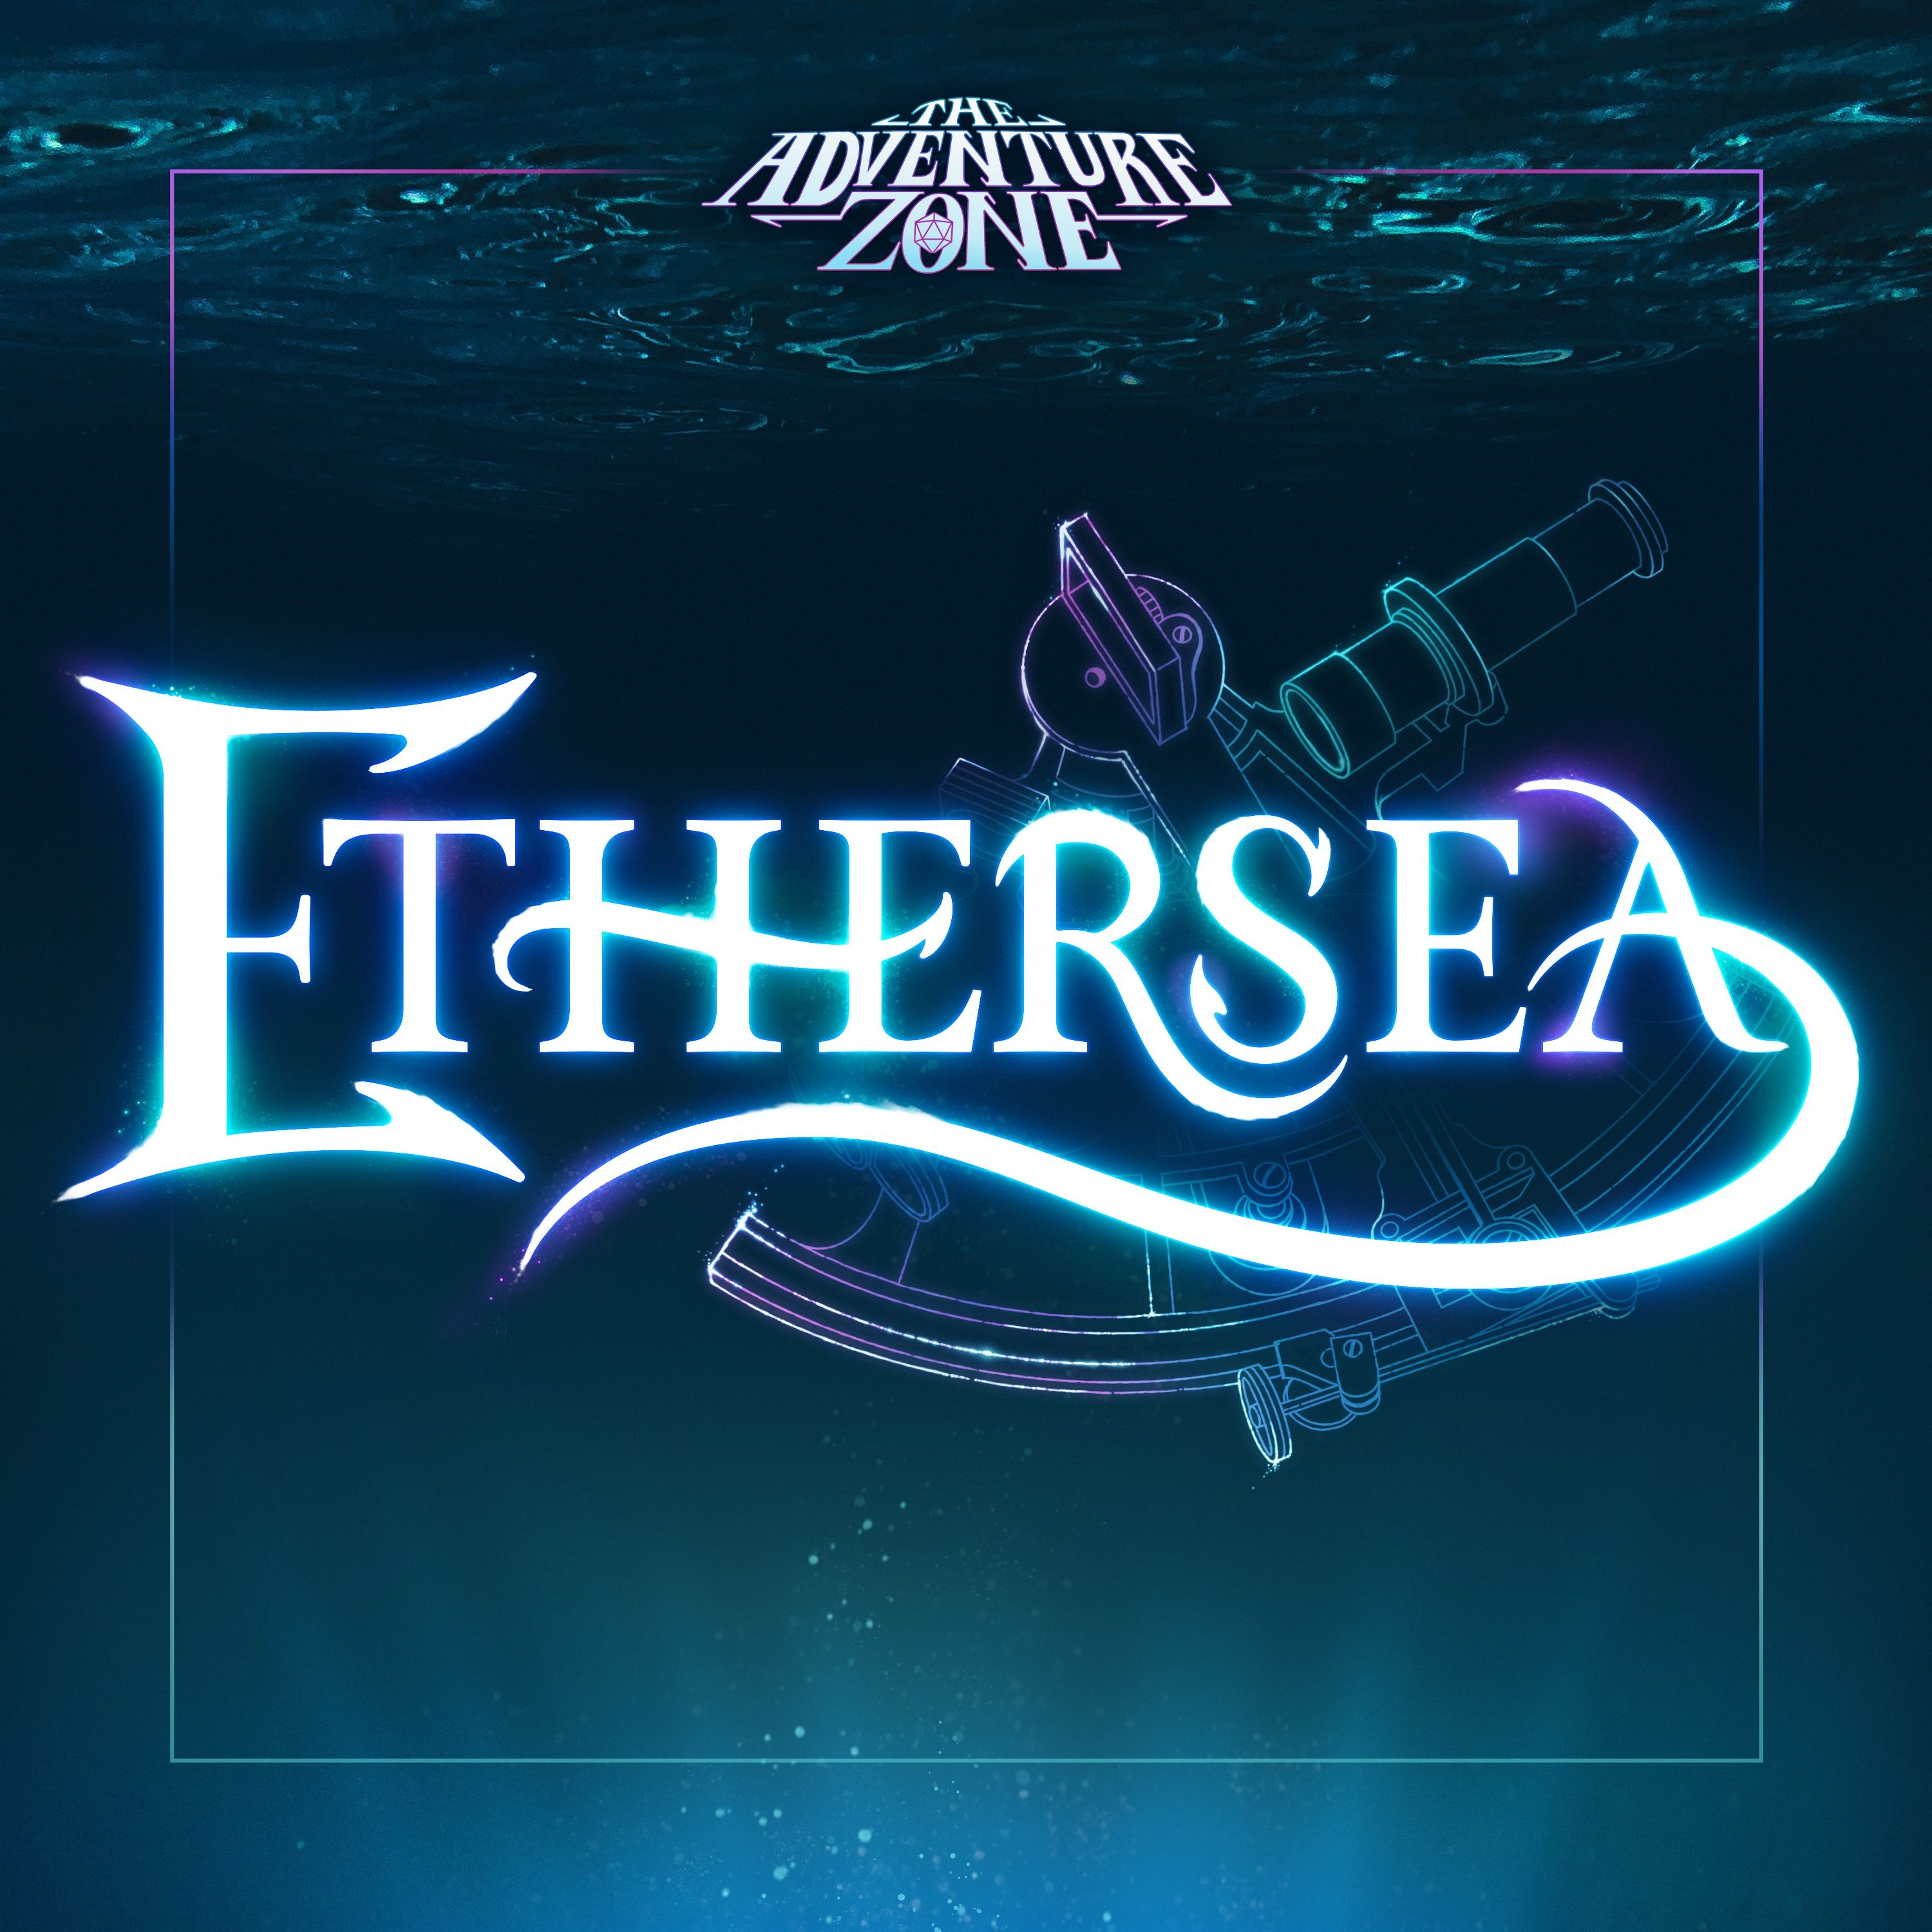 The Adventure Zone: Ethersea — Prologue IV: The Hierarchy of Terror